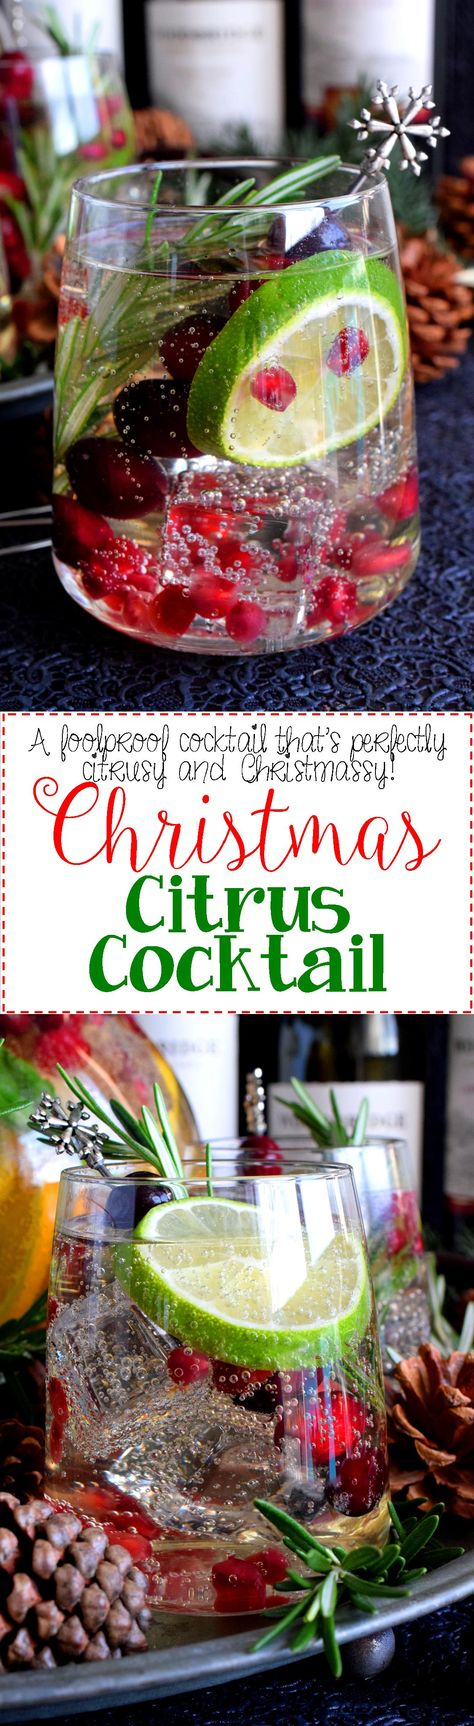 Christmas Citrus Cocktail - In need of a stress-free holiday drink that everyone will love?  This Christmas Citrus Cocktail is super easy, very refreshing, and beautifully festive!